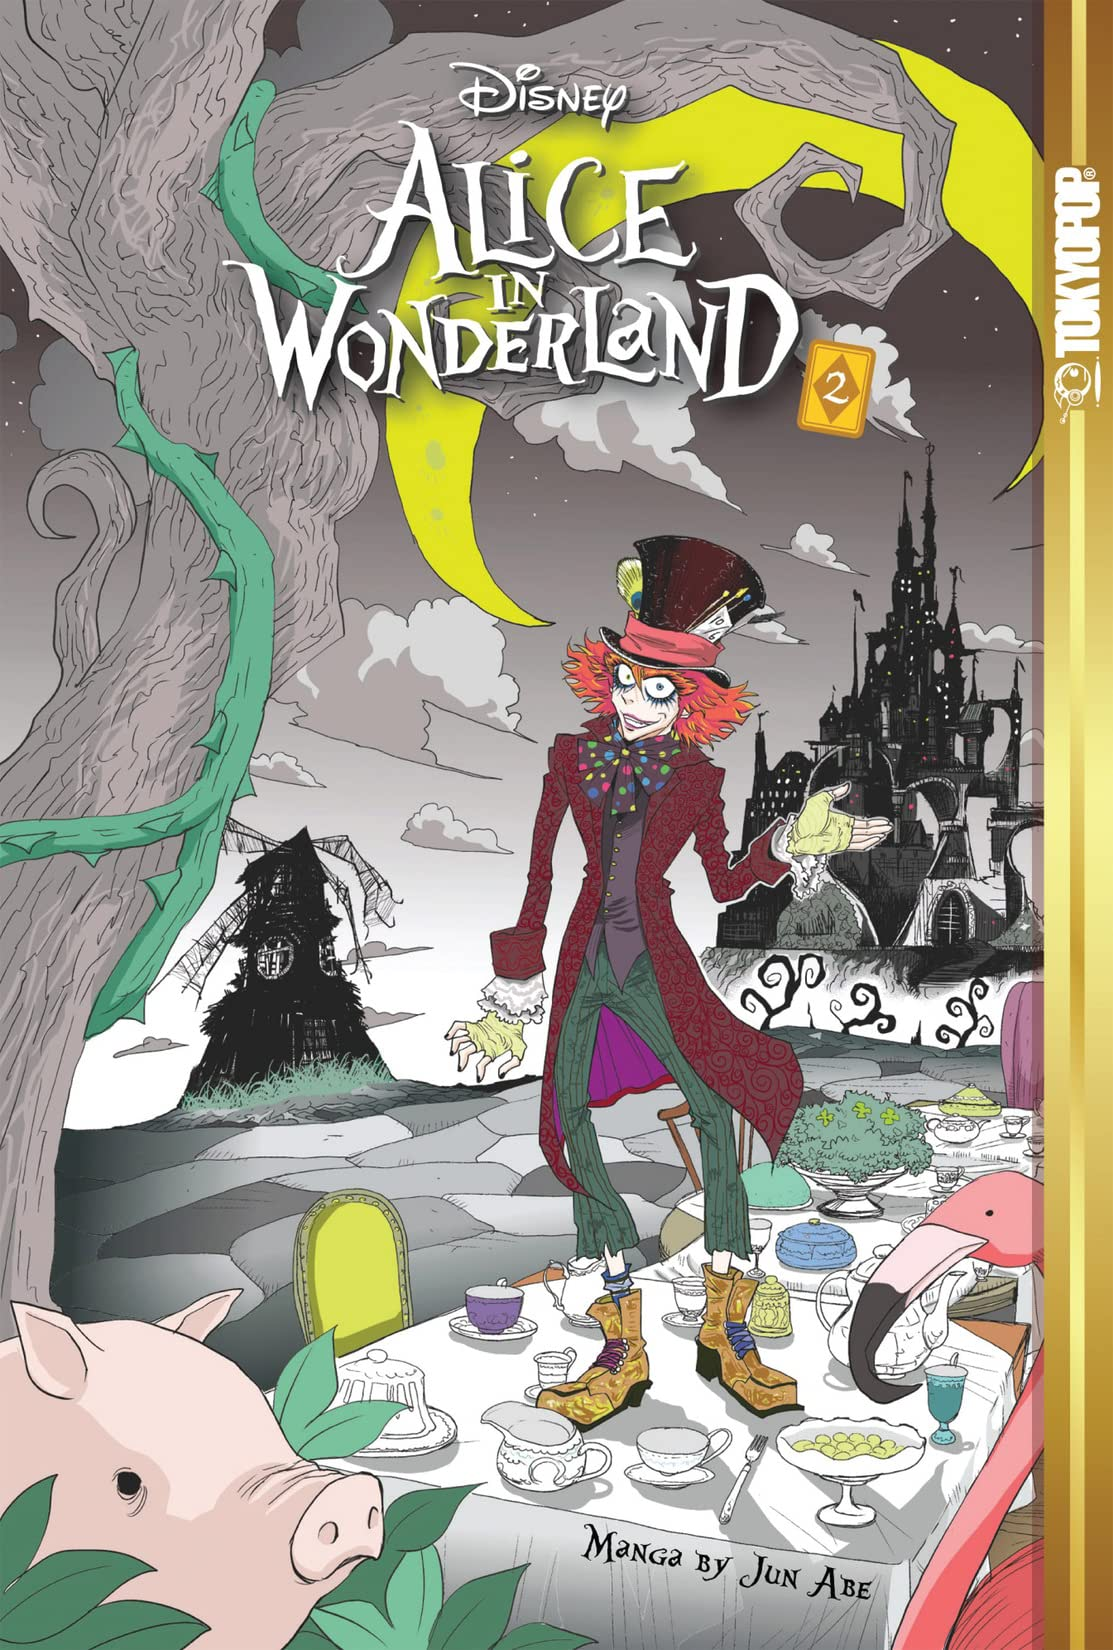 Disney Manga: Alice In Wonderland Vol. 2